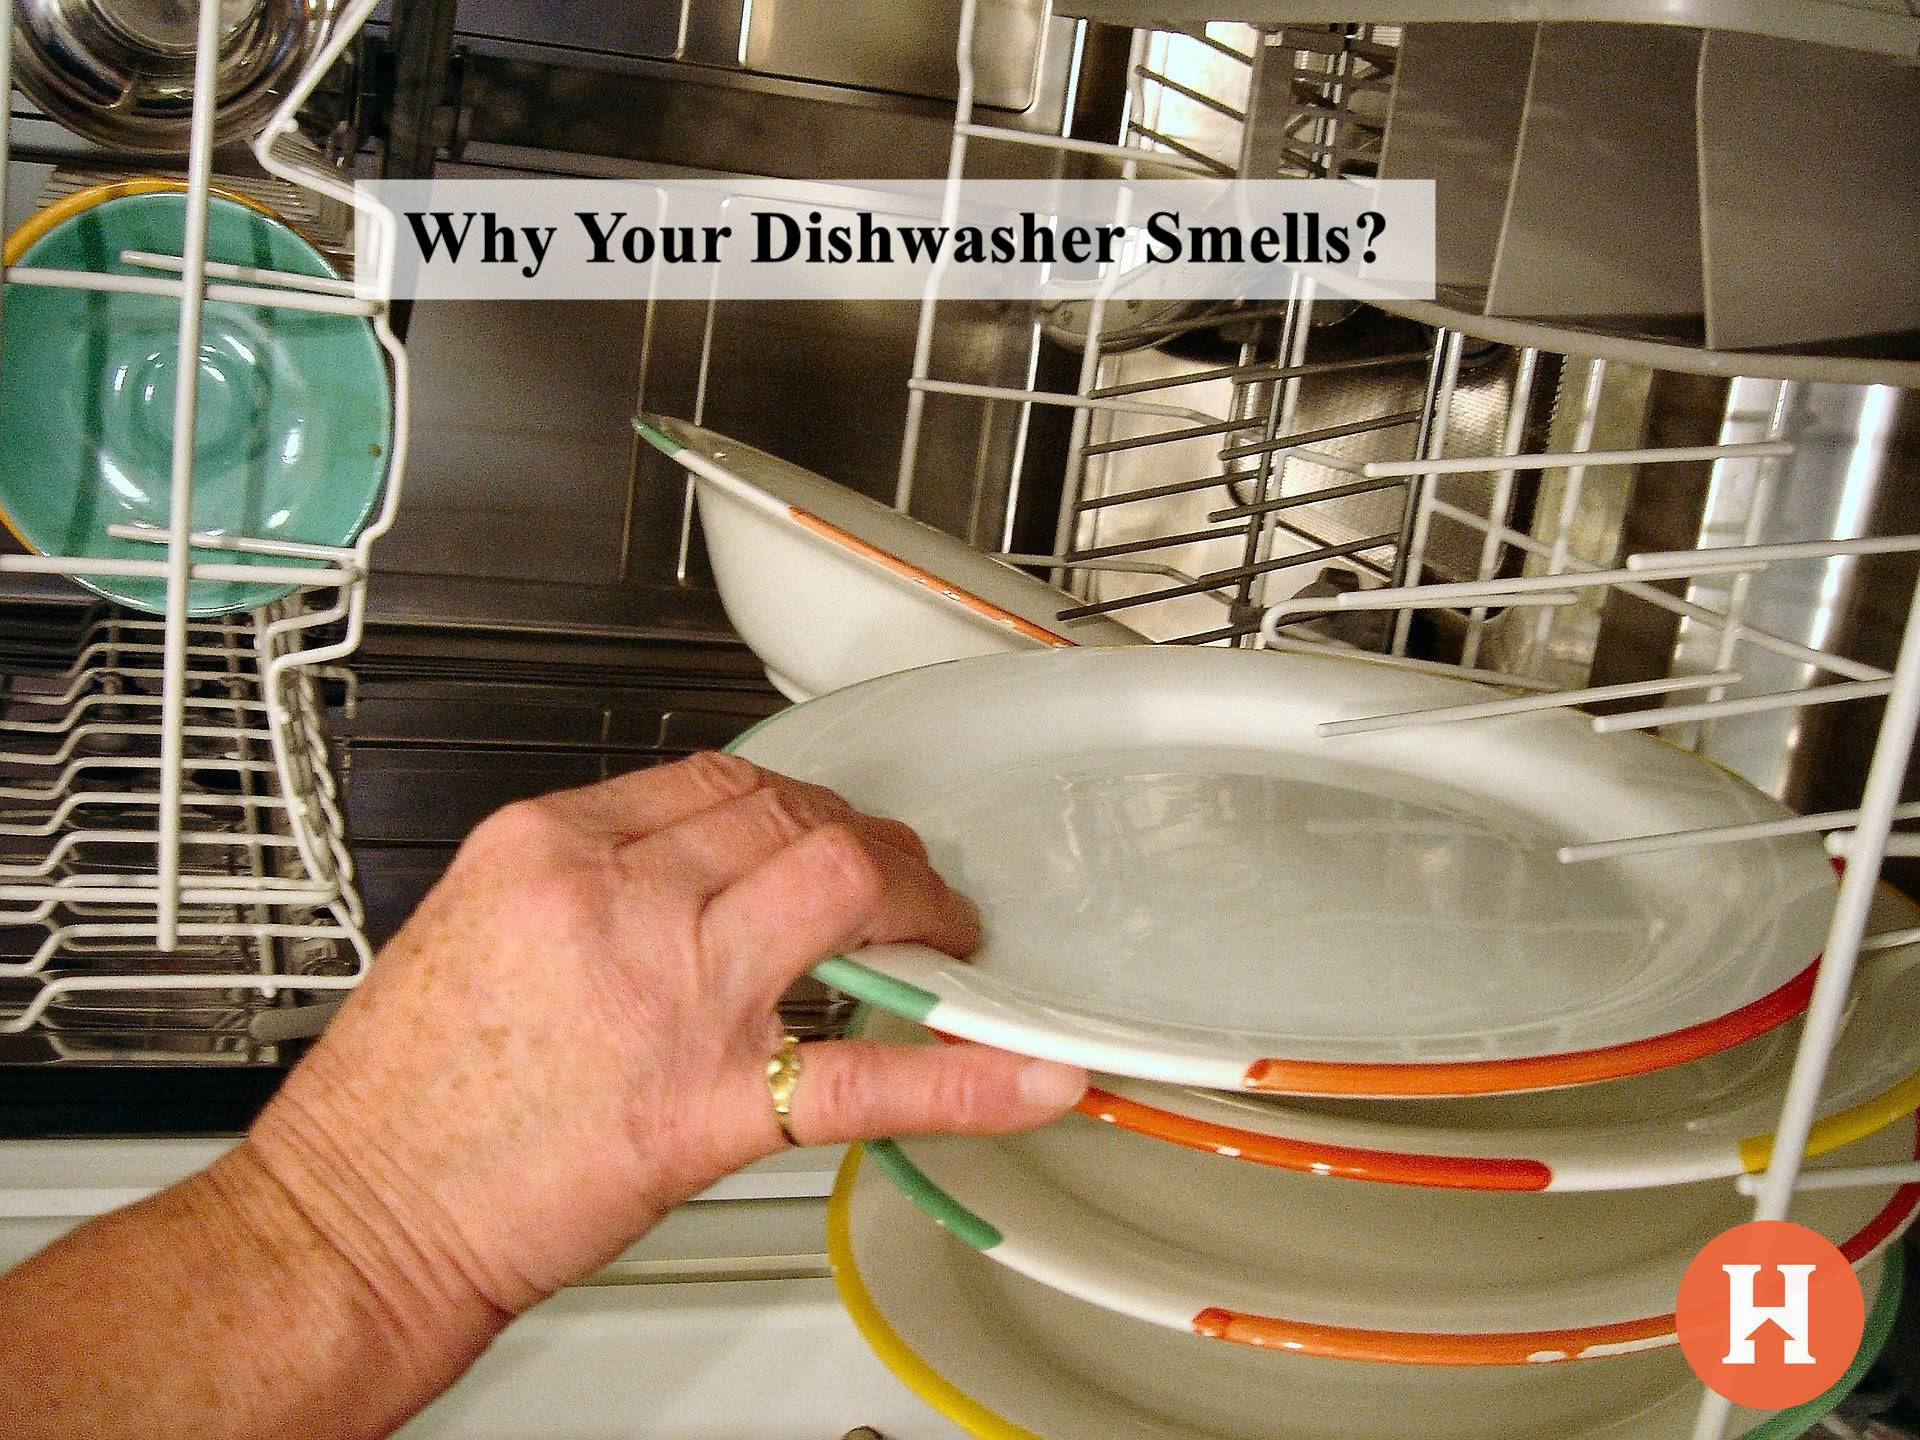 Why Your Dishwasher Smells?